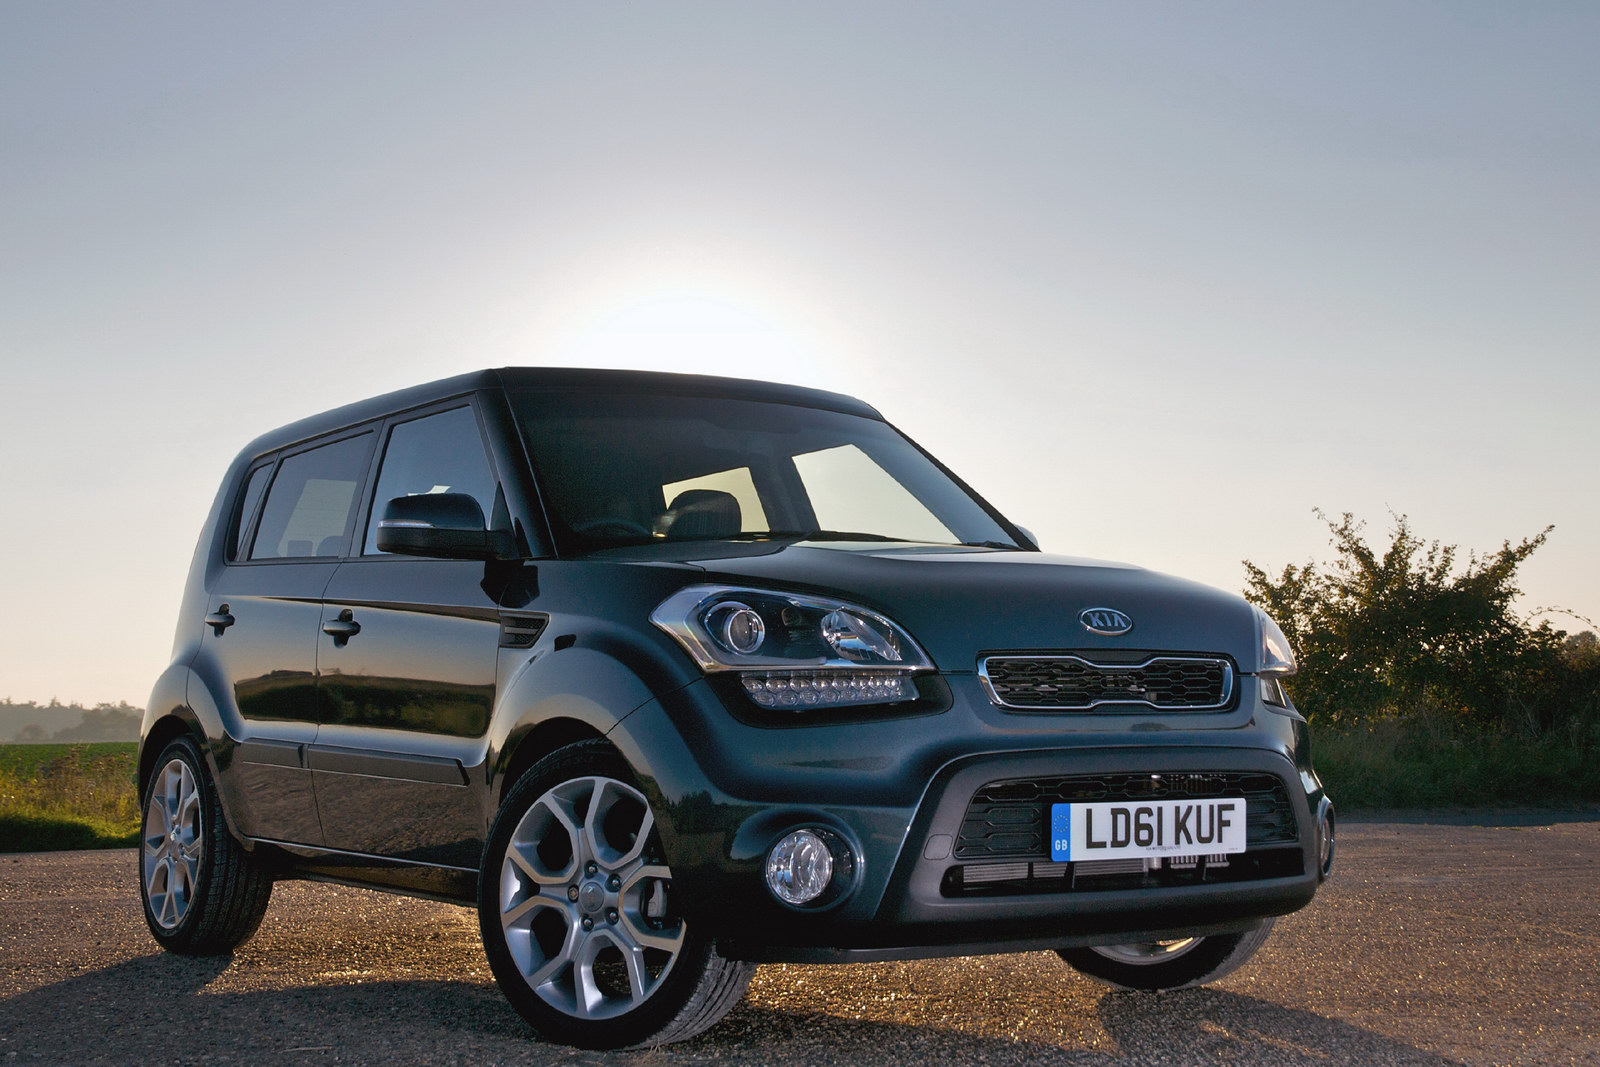 2012 Kia Soul Facelifted 1 2012 Kia Soul Facelift   More Eco friendly and Energy Efficient